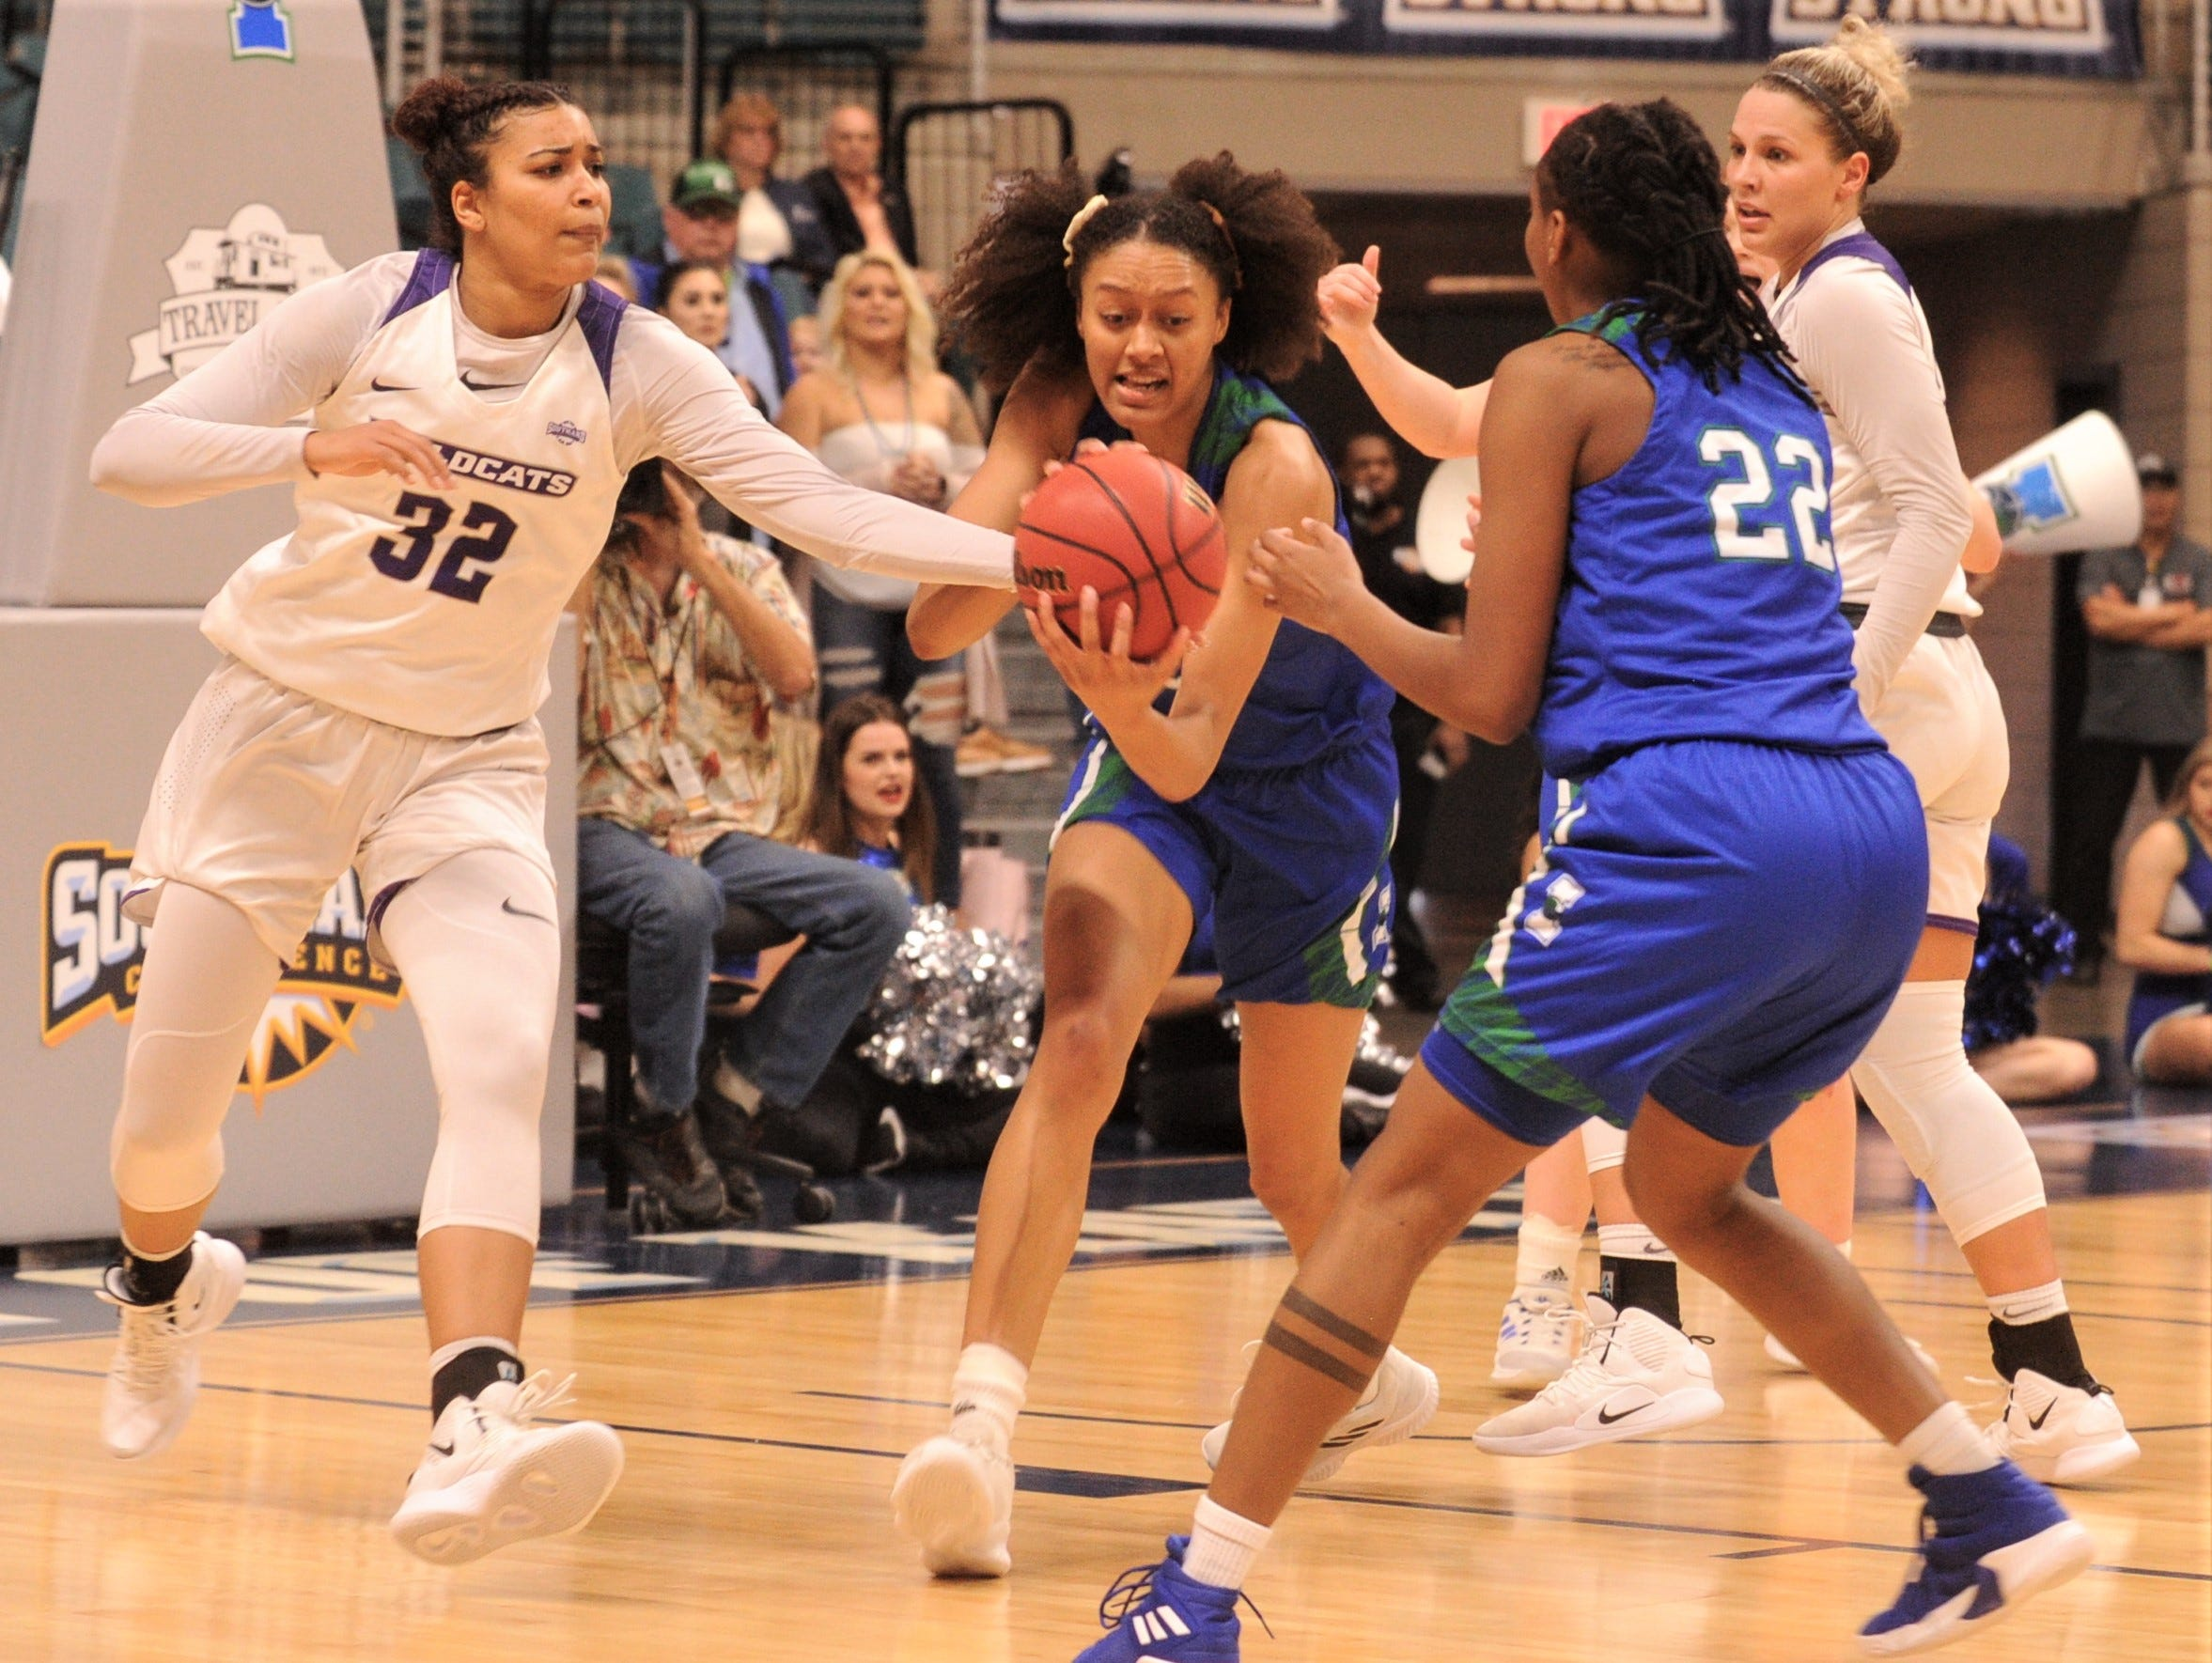 ACU's Makayla Mabry, left, battles Texas A&M-Corpus Christi's Alexes Bryant, center, for a rebound as Dalesia Booth (22) and ACU's Lexie Ducat look on. ACU beat the Islanders 69-68 in the Southland Conference women's tournament championship game Sunday, March 17, 2019, at the Merrell Center in Katy.